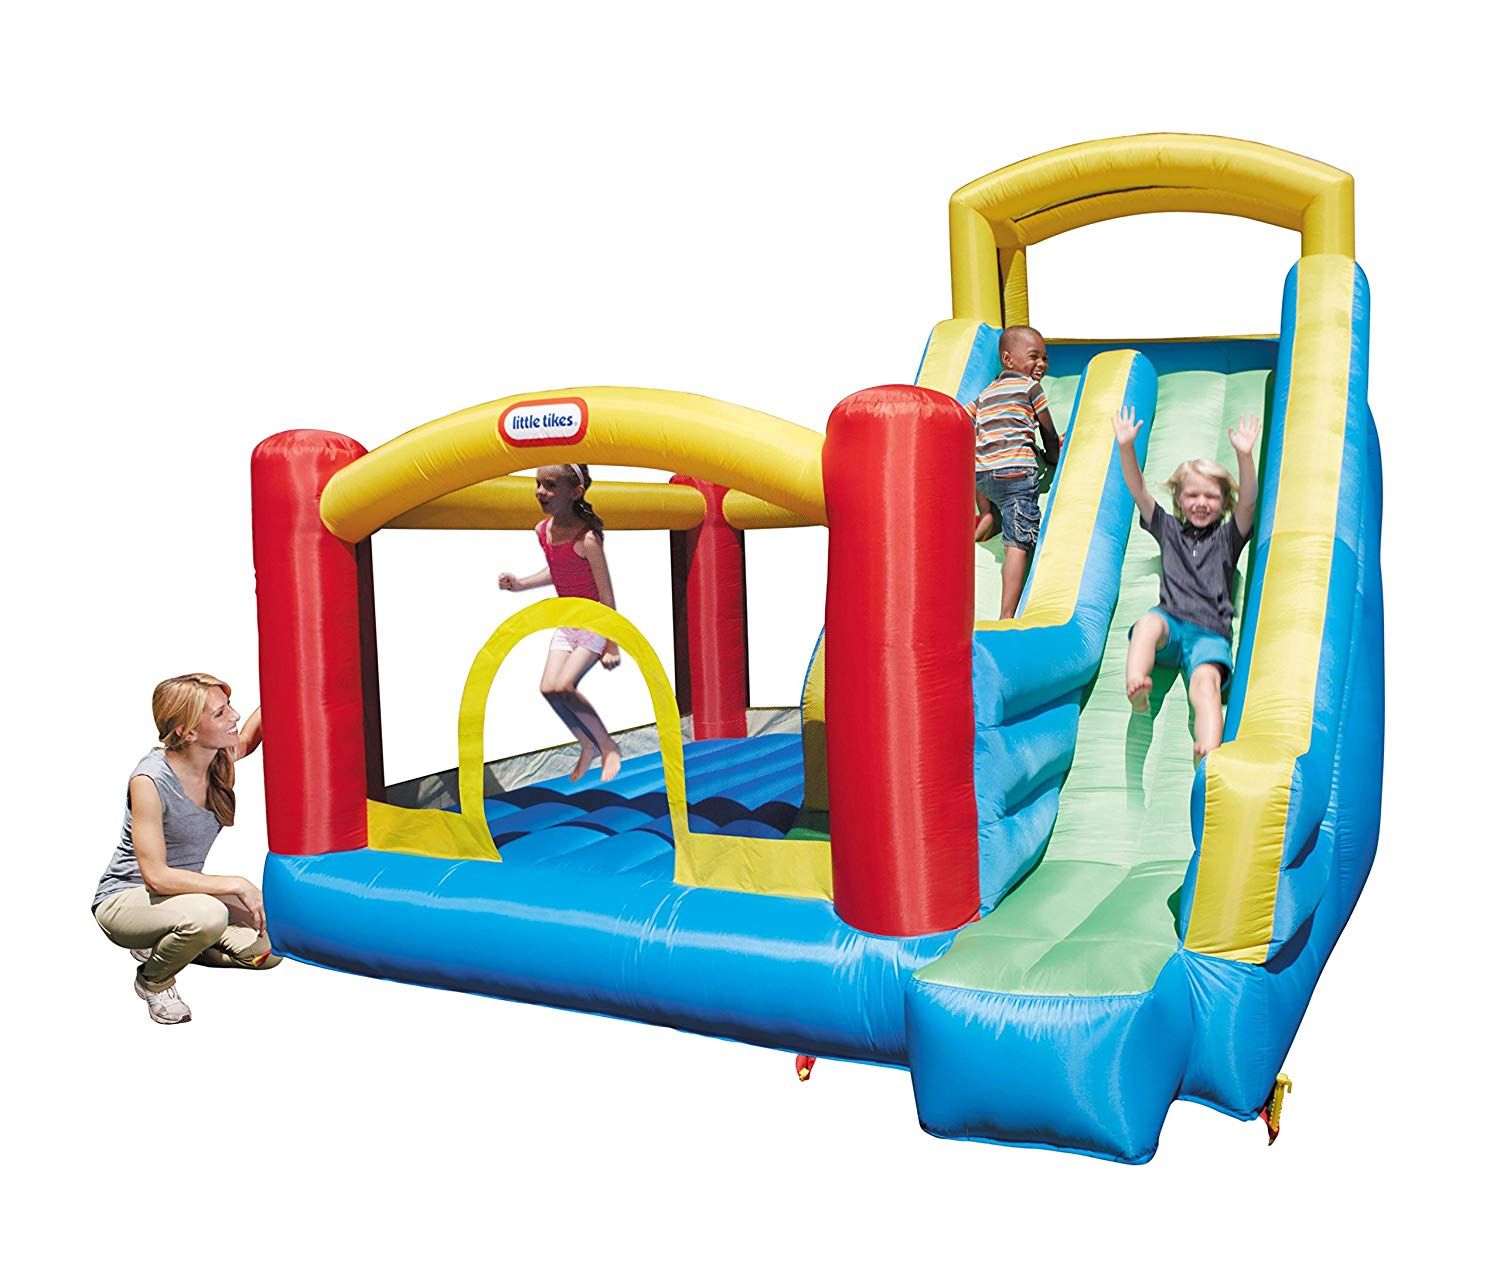 This Little Tikes Giant Bouncer has it all!! Kids will keep active as the climb, slide and bounce with this fun inflatable bouncer in the backyard!